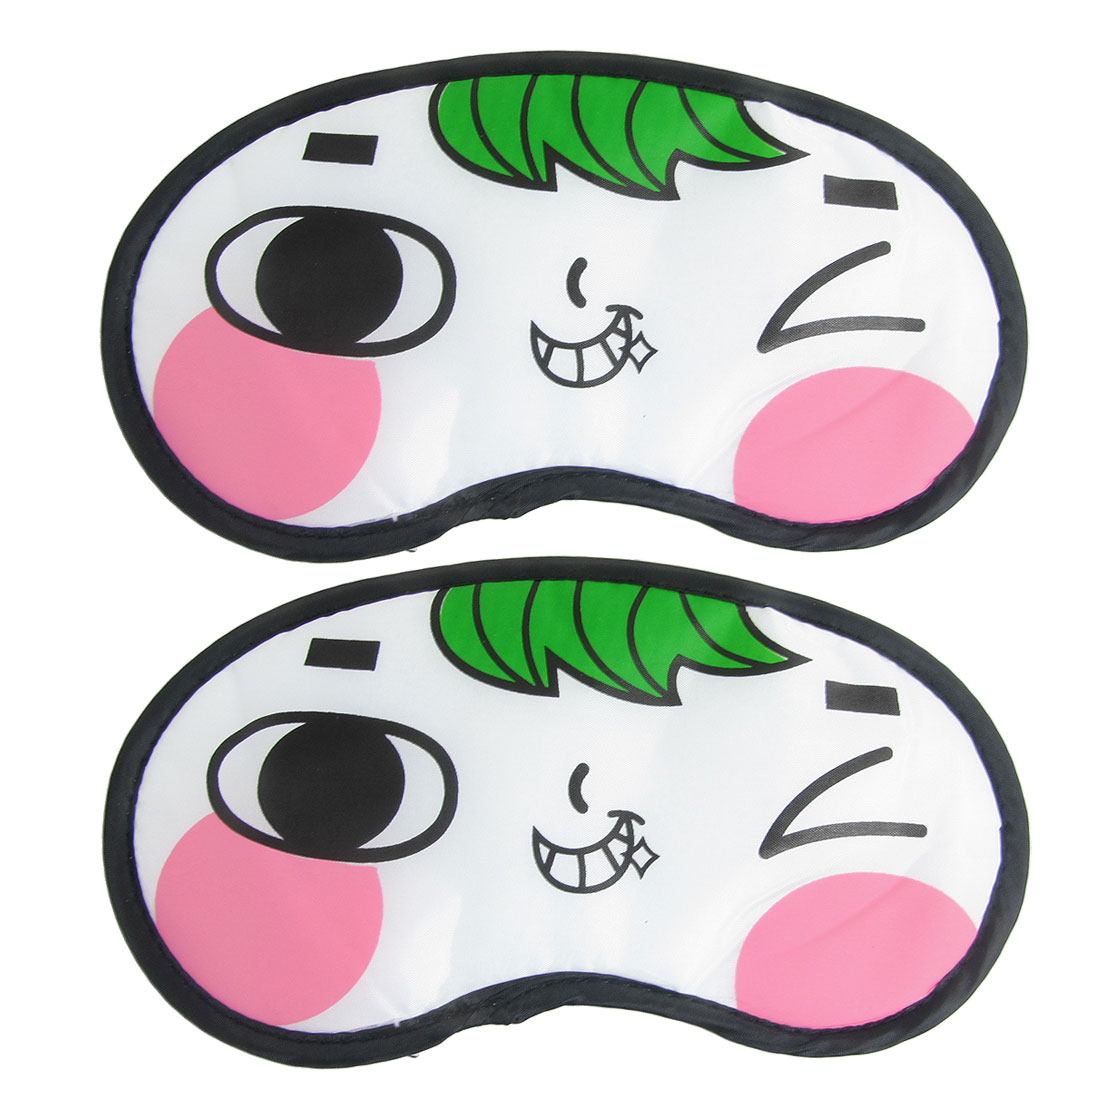 2 Pcs Cartoon Smiling Face Pattern Black White Nylon Eye Mask Eyeshade Sleep Blinder